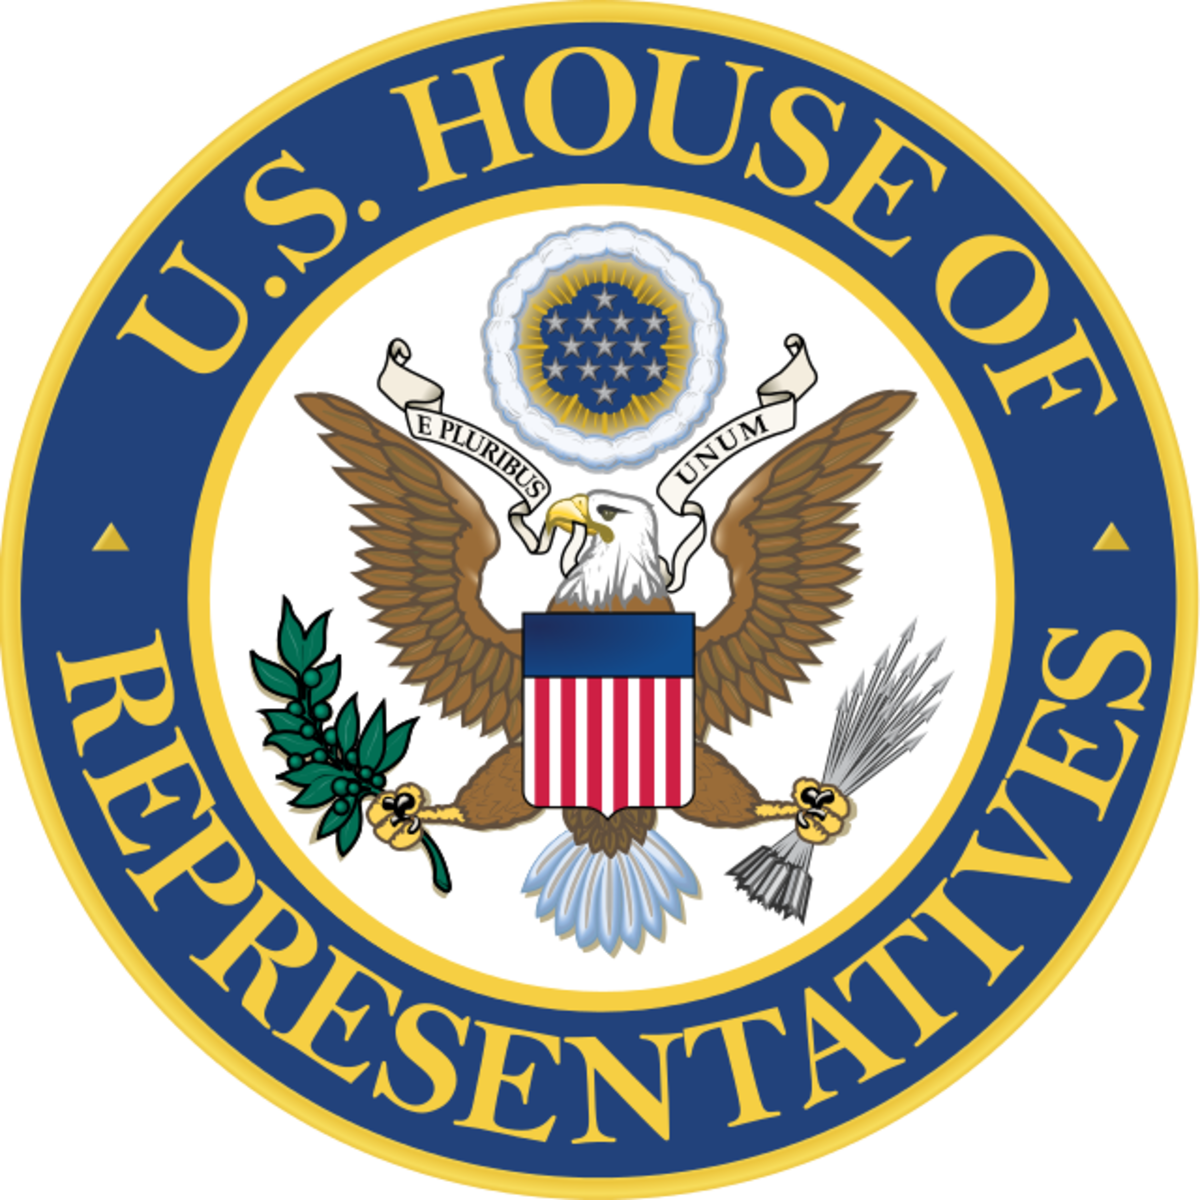 How Do I Remove a Representative From Office?